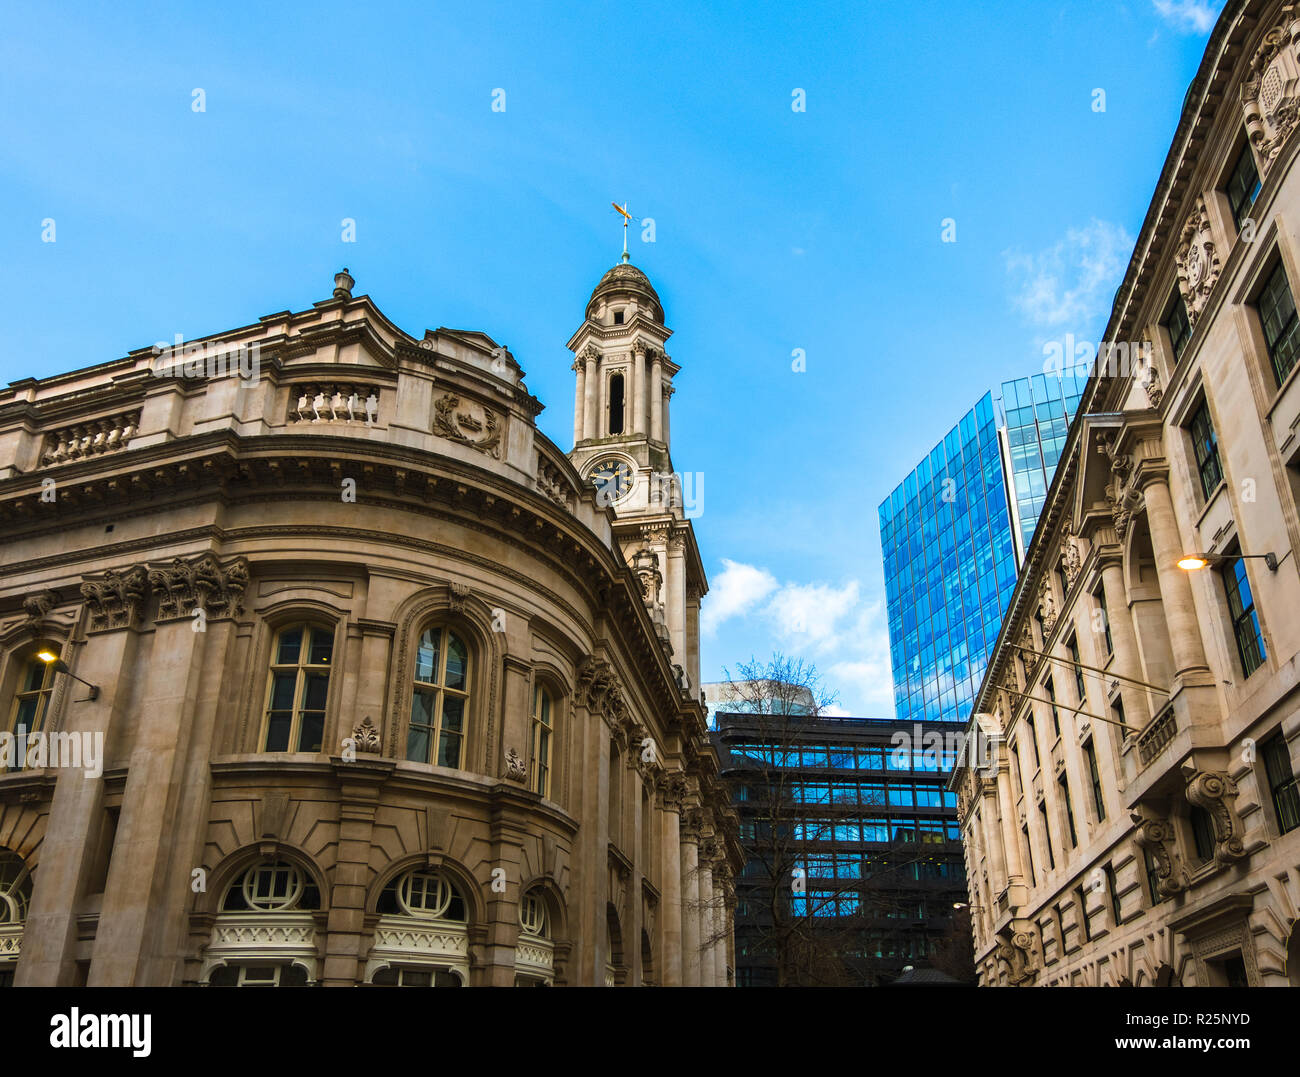 City life in the Royal Exchange area on a sunny day. A mixture of old and new buildings. - Stock Image